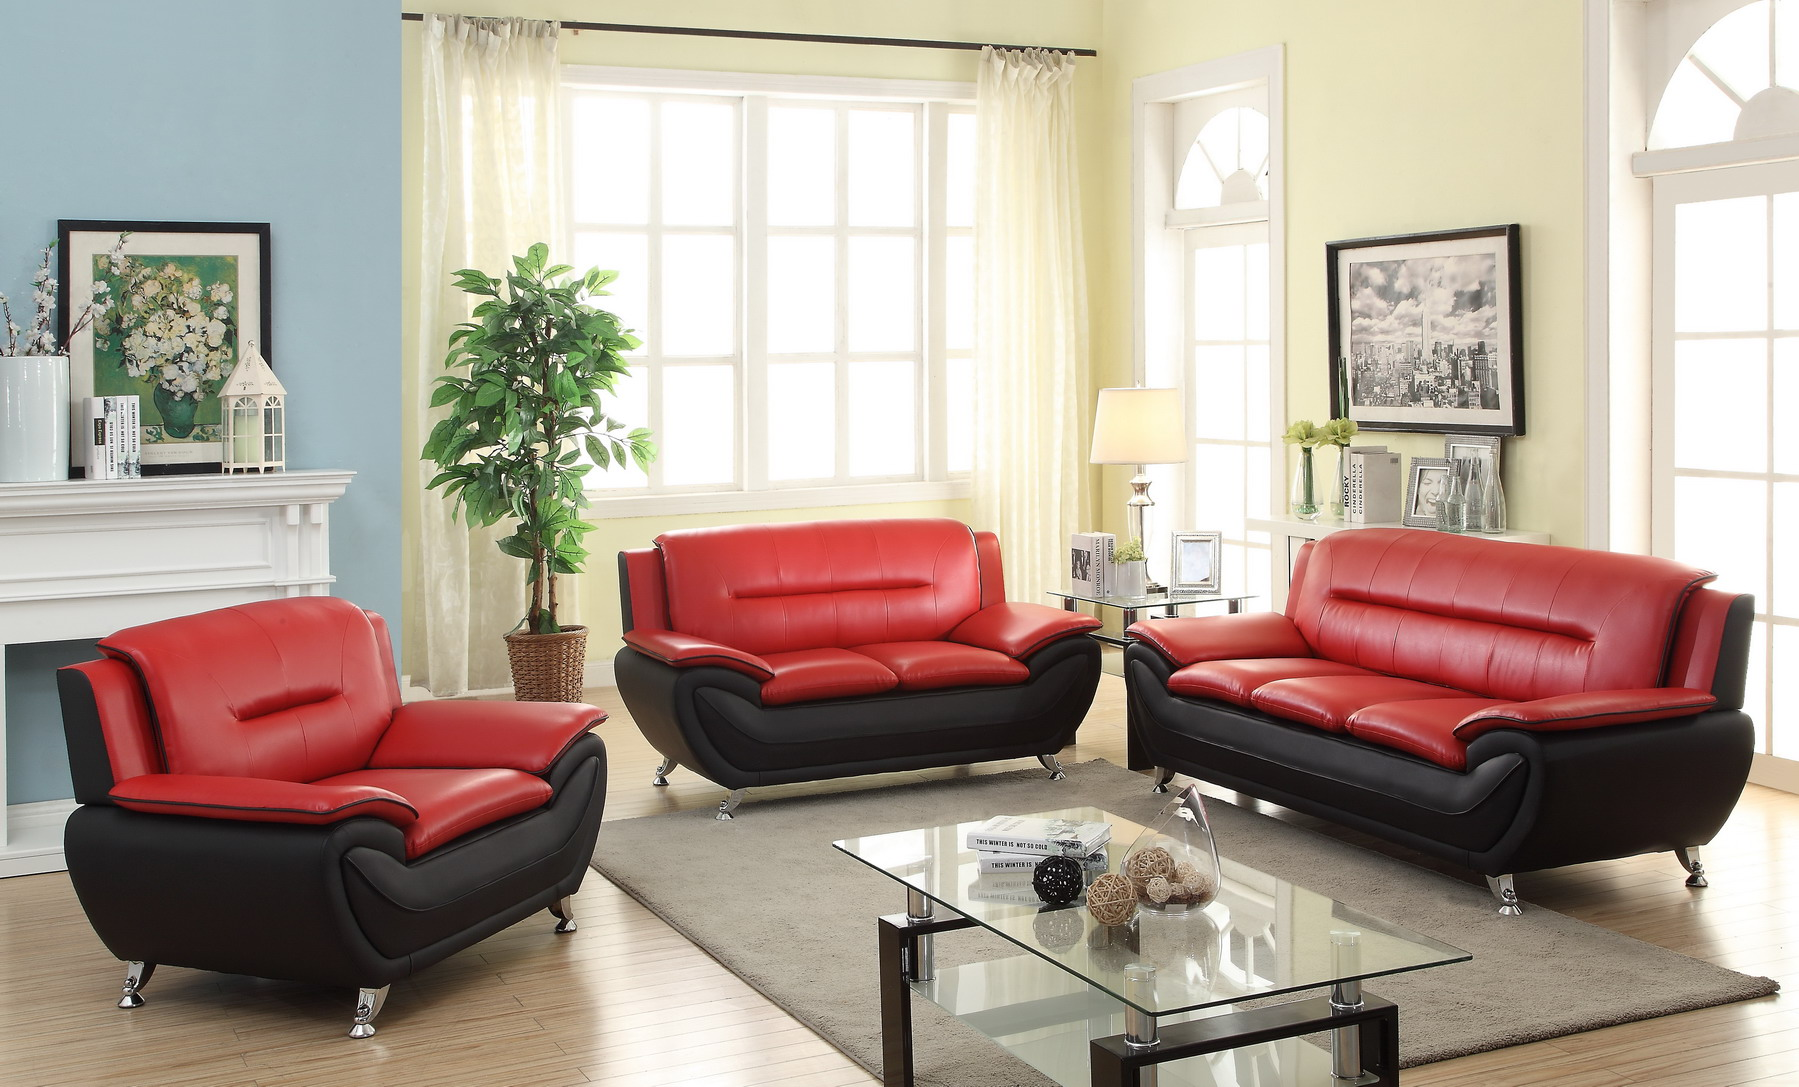 New 3 Pcs Contemporary Bonded Leather Living Room Set